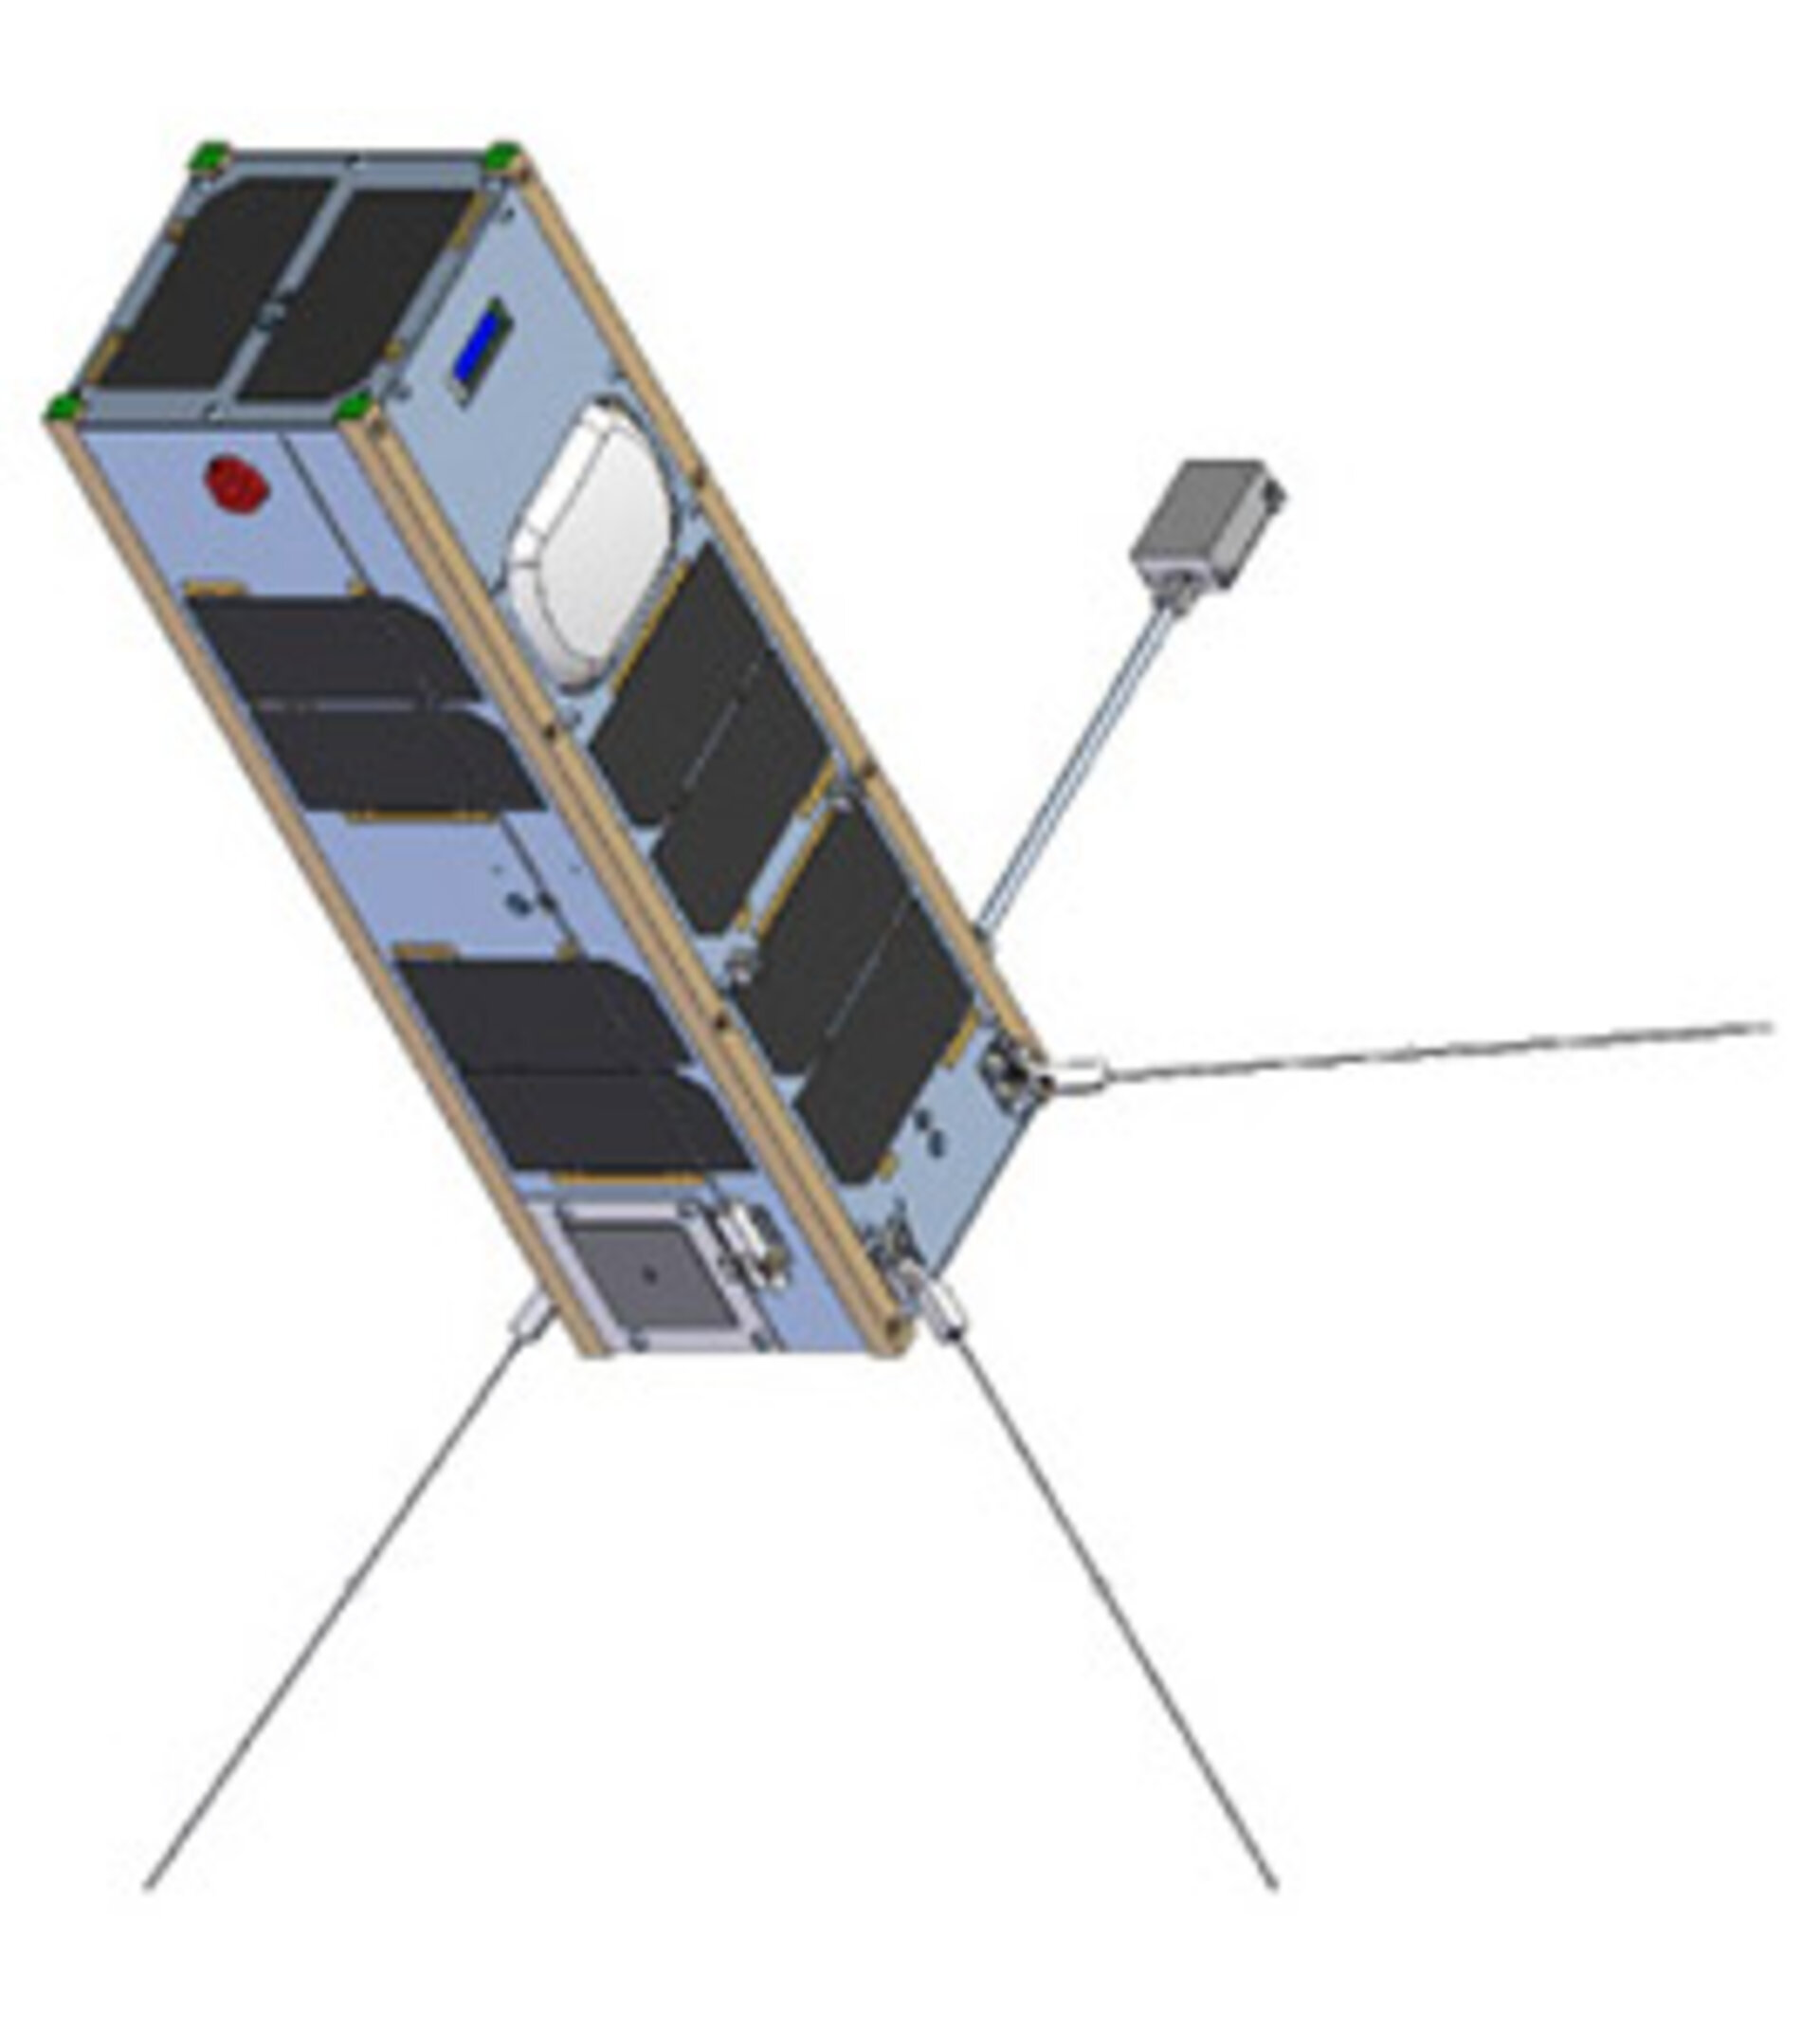 Three-unit CubeSat